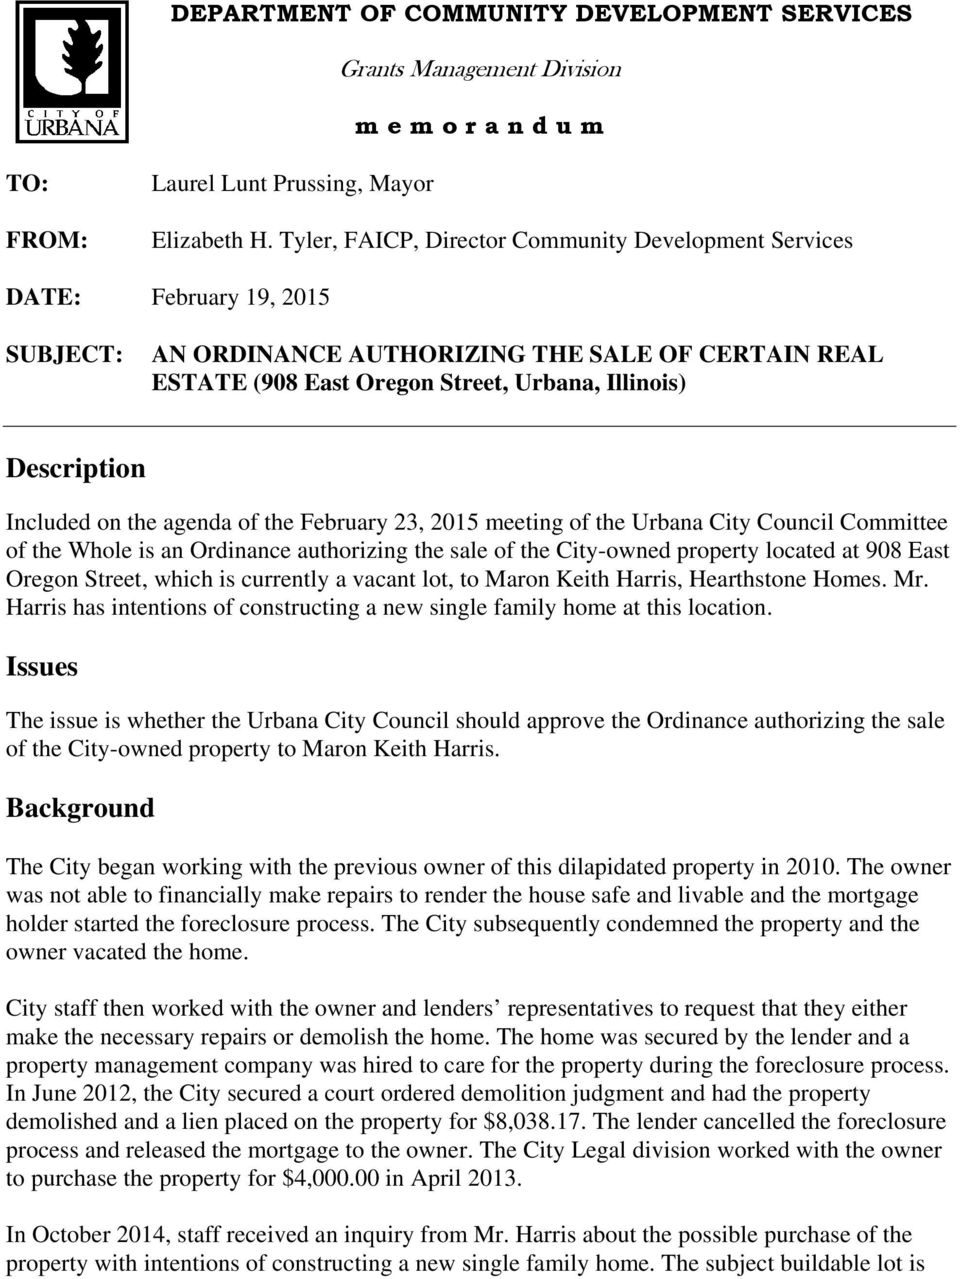 Included on the agenda of the February 23, 2015 meeting of the Urbana City Council Committee of the Whole is an Ordinance authorizing the sale of the City-owned property located at 908 East Oregon